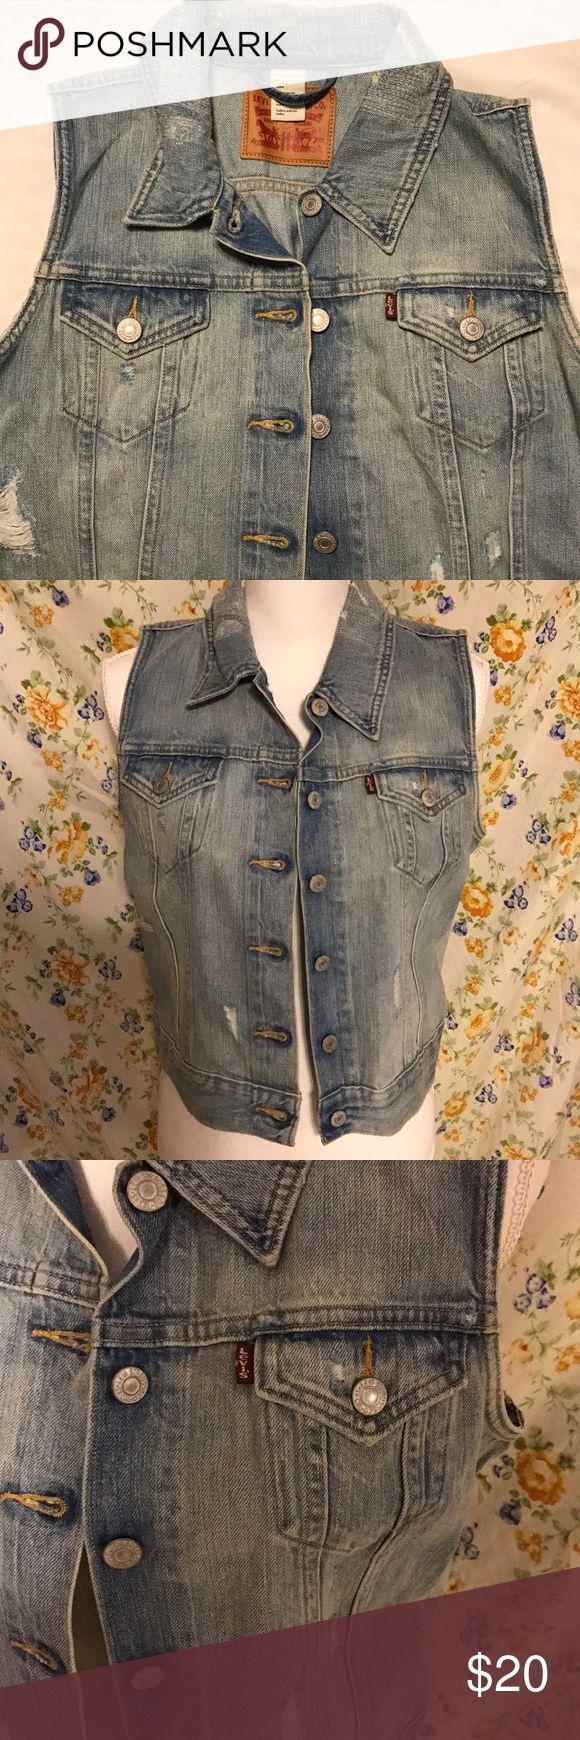 "LEVI'S denim distressed vest Levi's denim distressed vest **size medium  **structured, form fitted **great pre owned condition ; I'm 5""9 and it's a little too short for me since I prefer my jackets/vest more oversized ** super cute over dresses, graphic tees and turtlenecks  **very soft denim Levi's Jackets & Coats Vests"